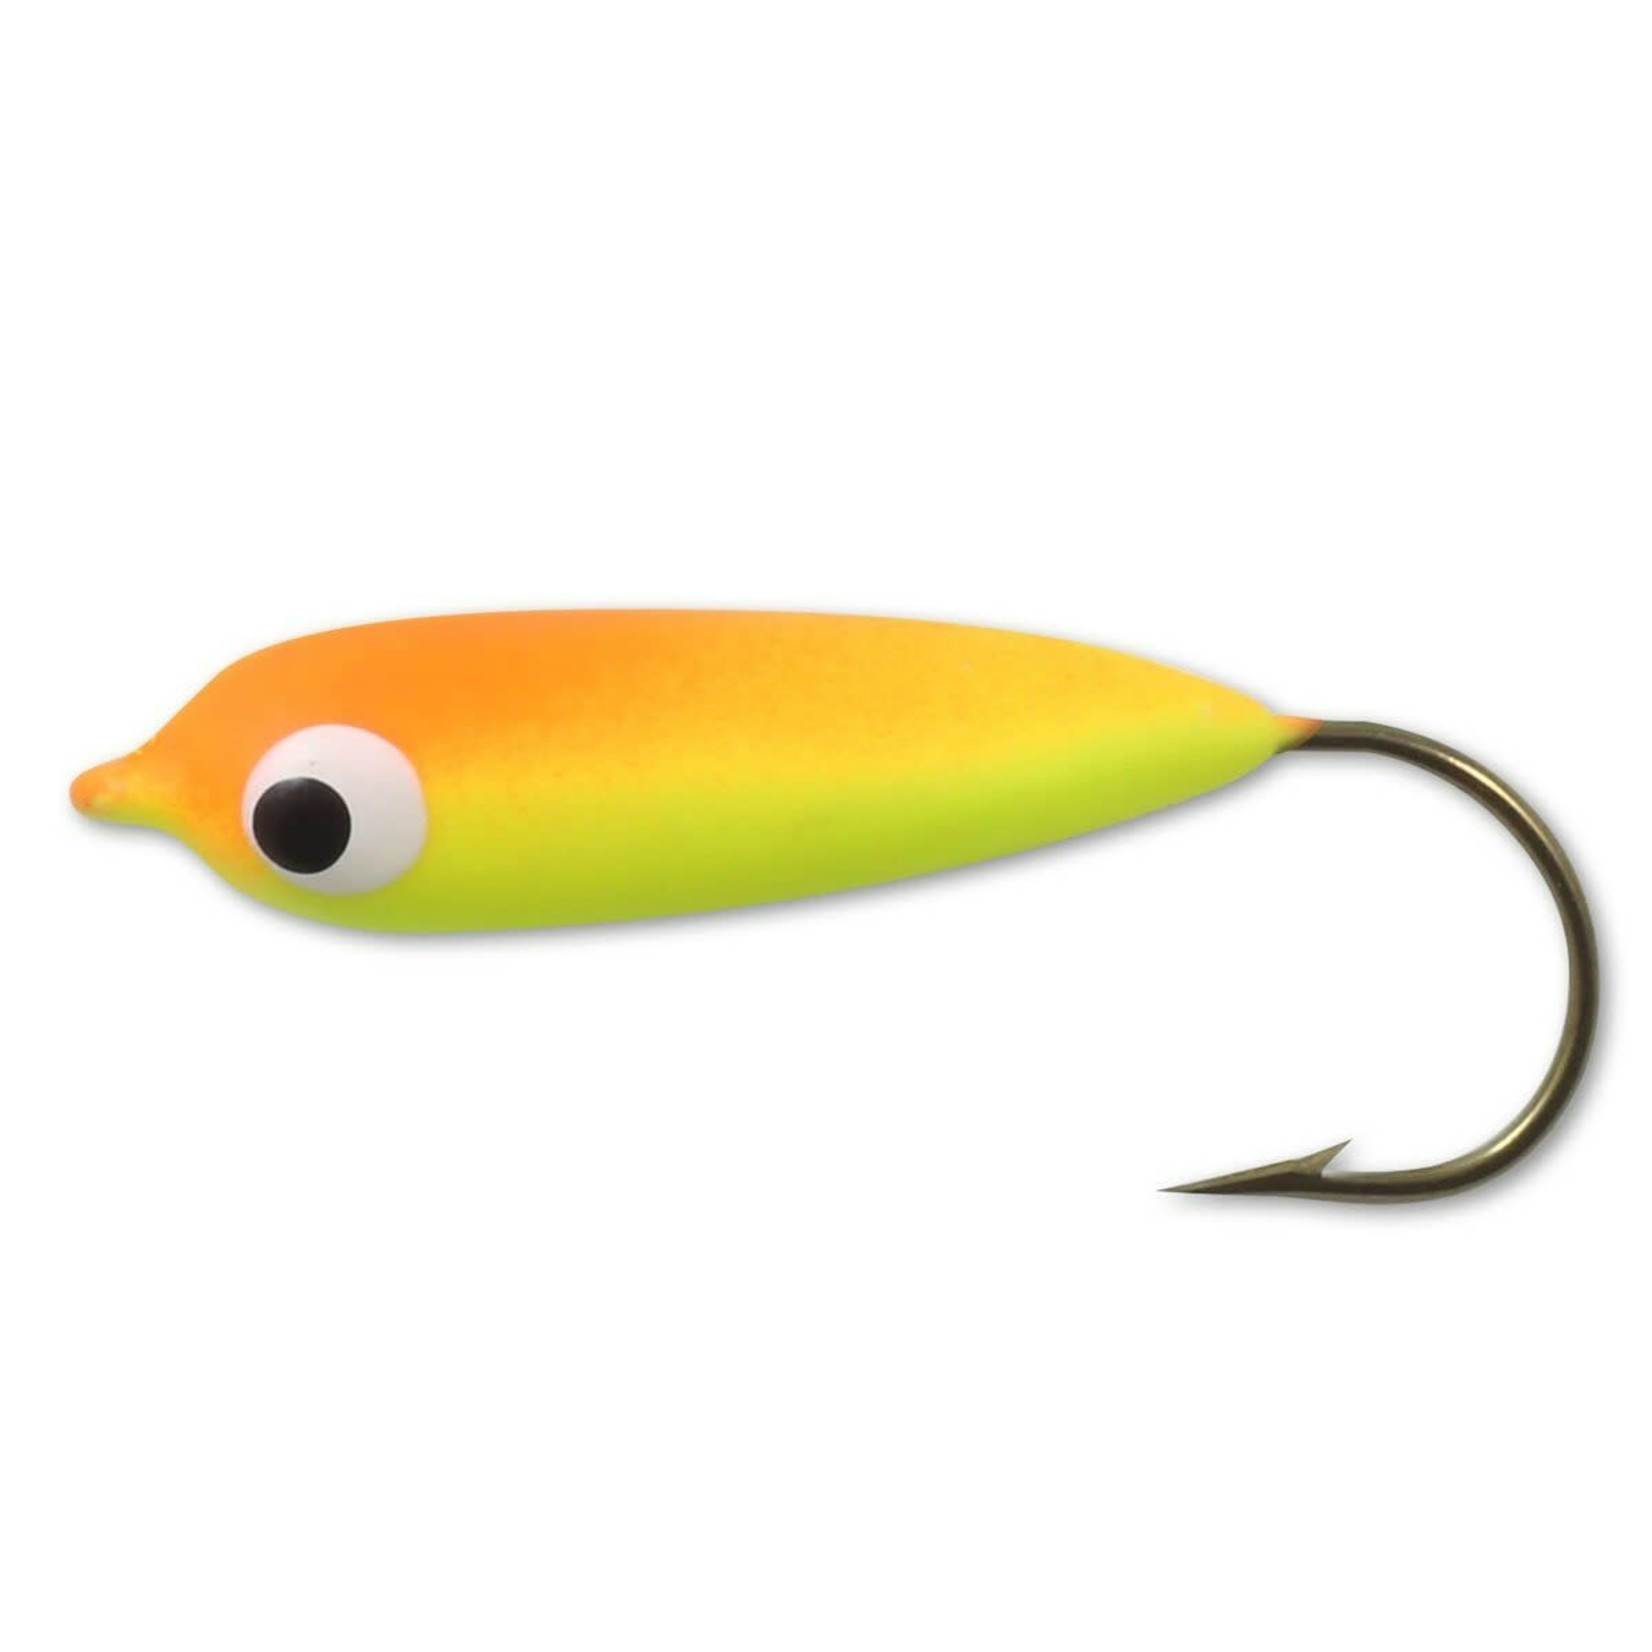 Northland Fishing Tackle Northland Gum-Drop Floater - ASSORTED COLORS